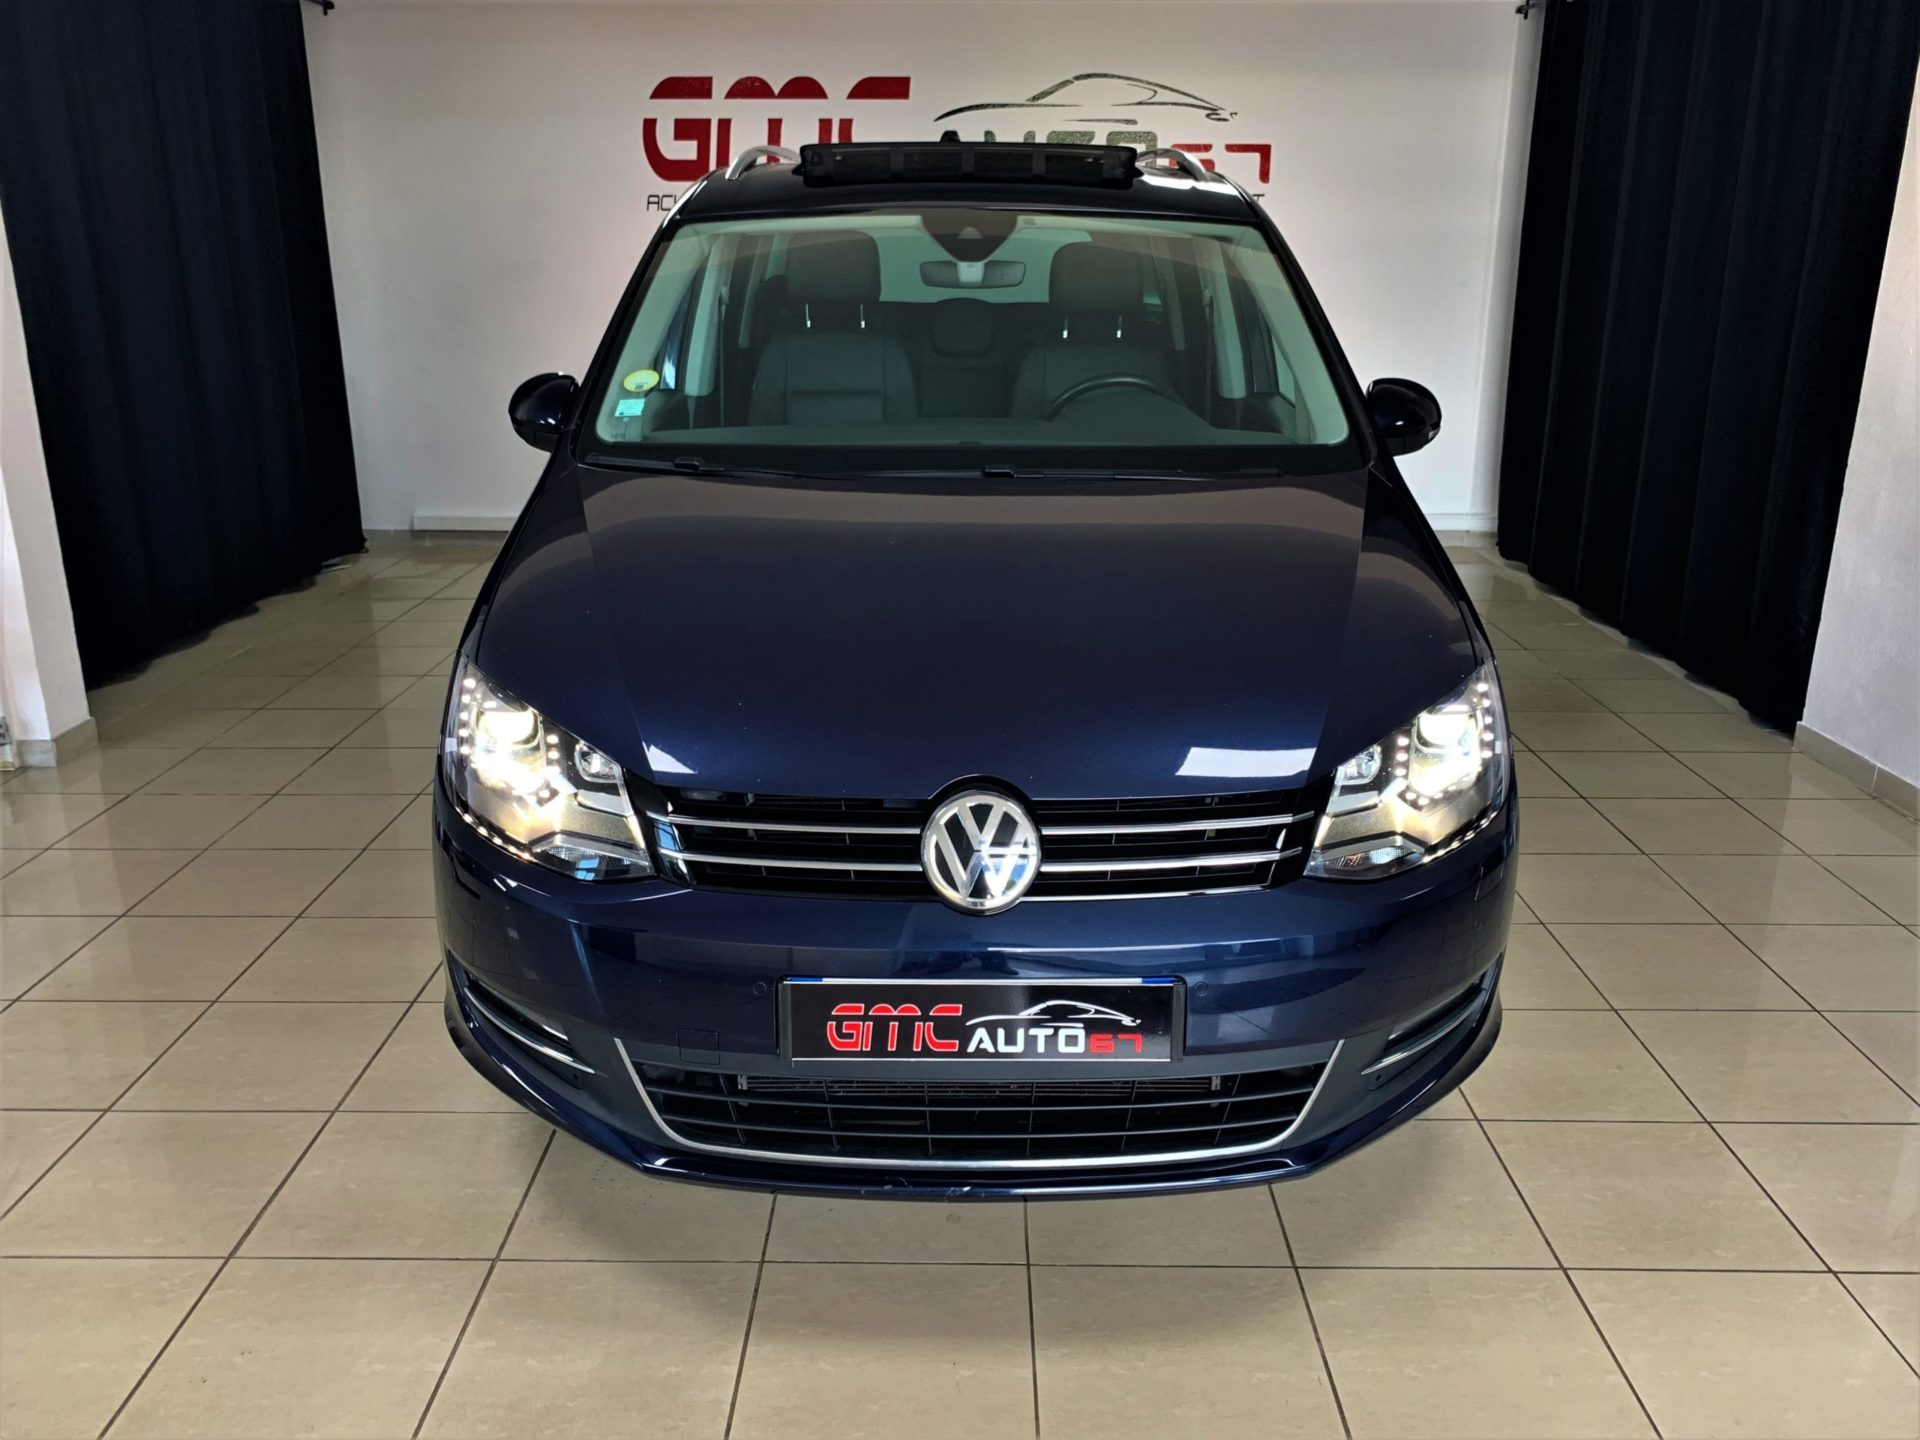 Volkswagen Sharan 2.0 TDI 150 BlueMotion Technology DSG6 Carat monospace - GMC AUTO 67